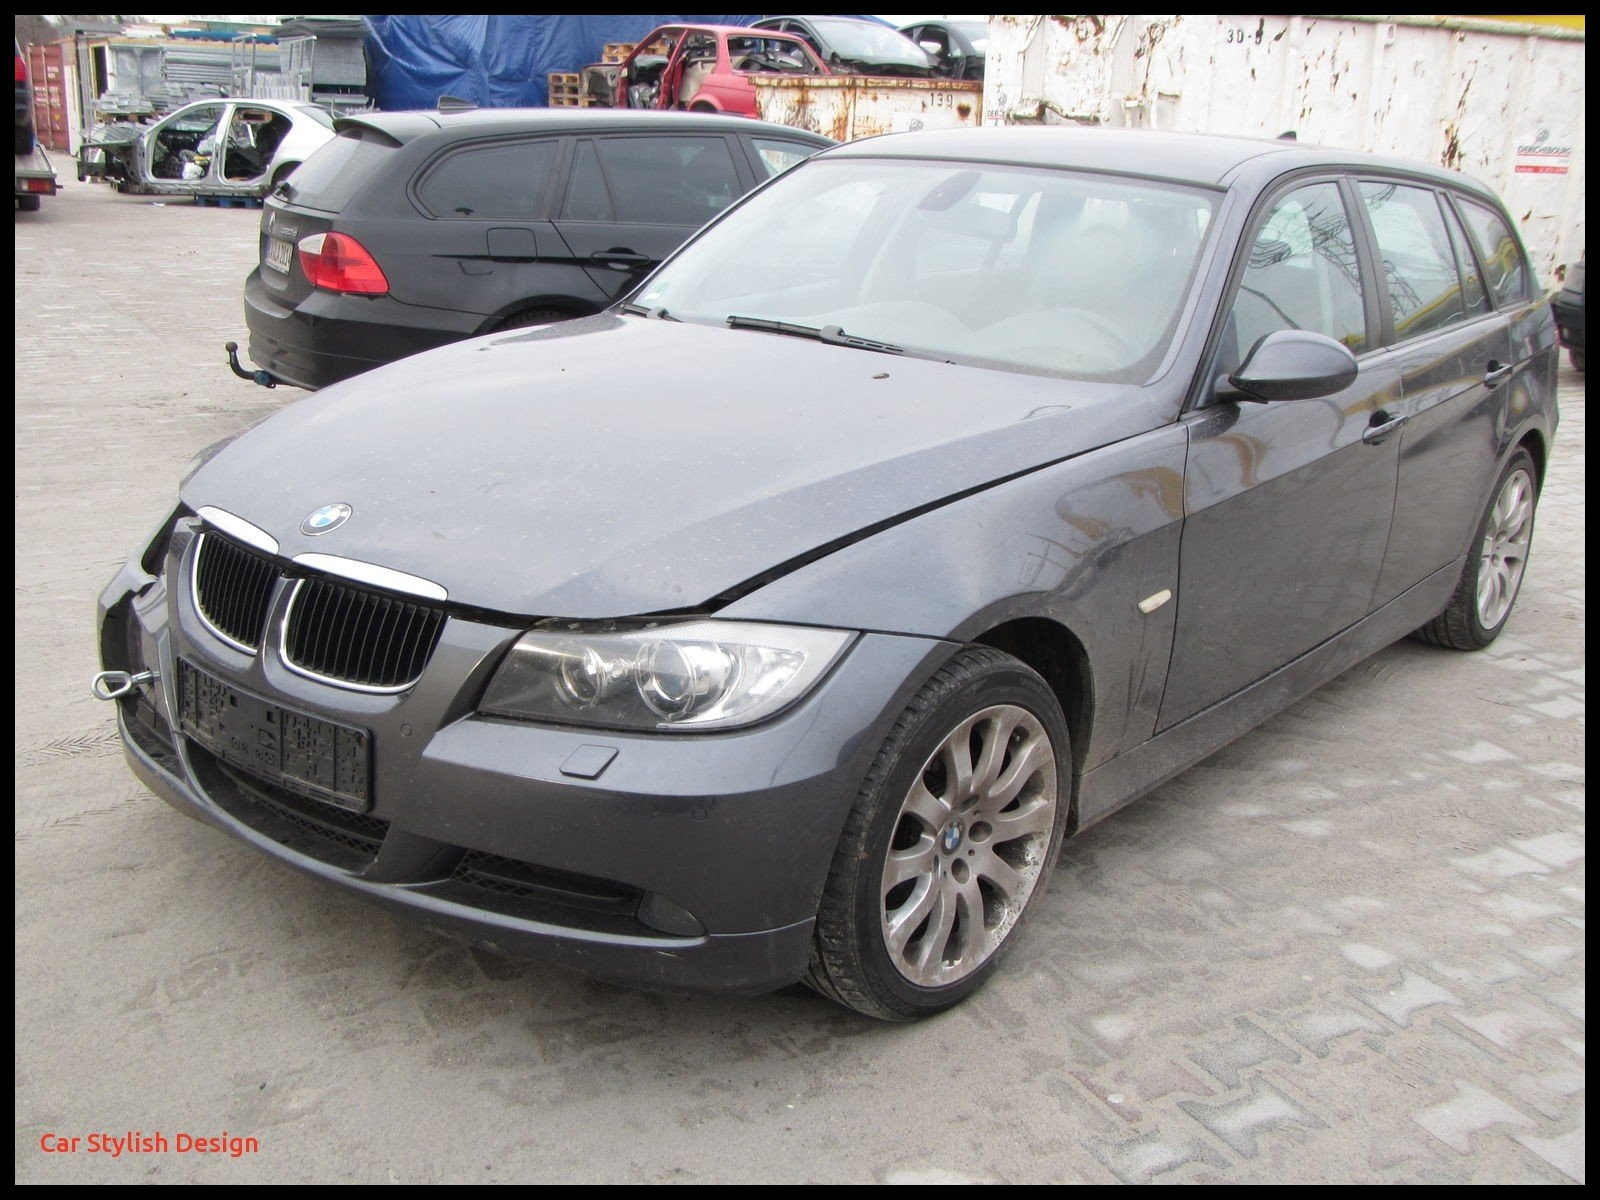 Bmw 325 for Sale Best Fresh 2002 Bmw 325i – Car Stylish Design